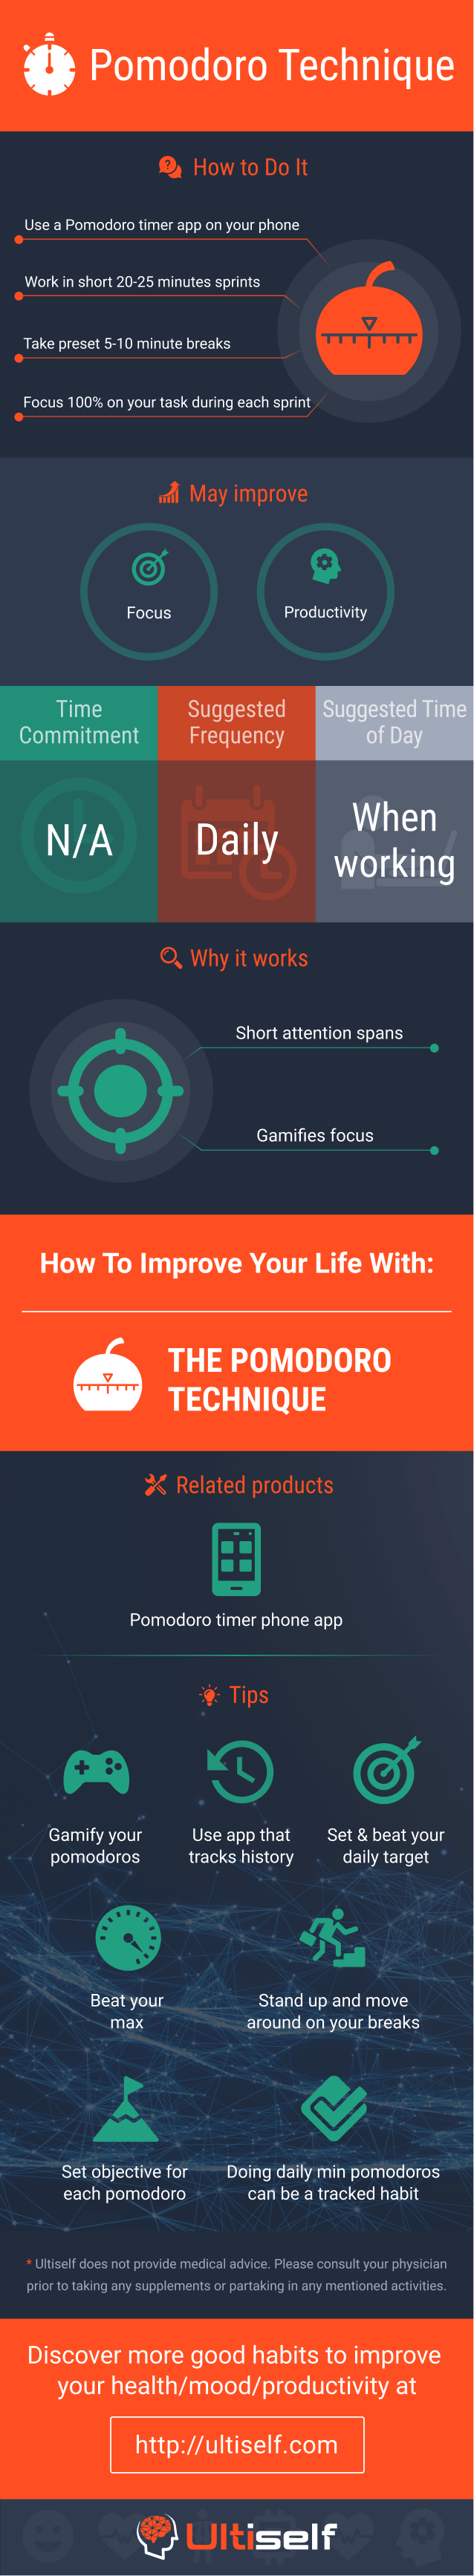 Pomodoro Technique infographic